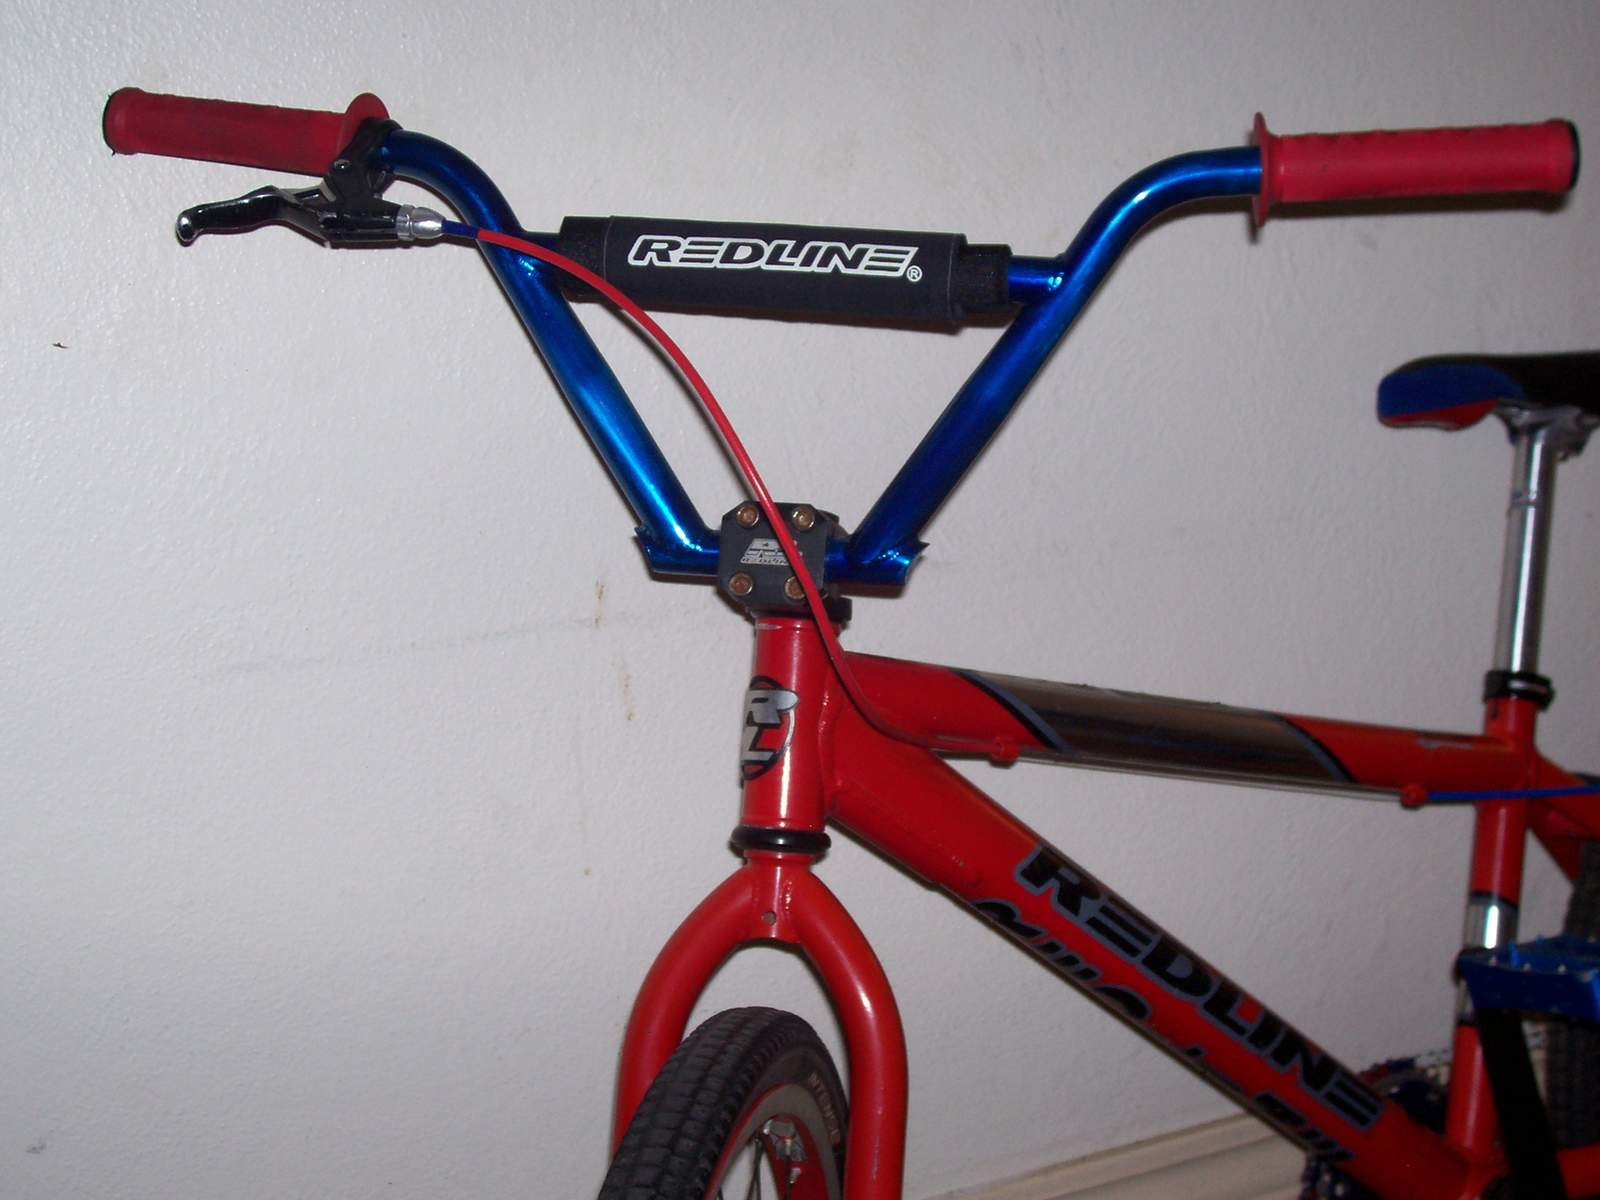 http://uploads.bmxmuseum.com/user-images/61851/100_675958258556eb.jpg